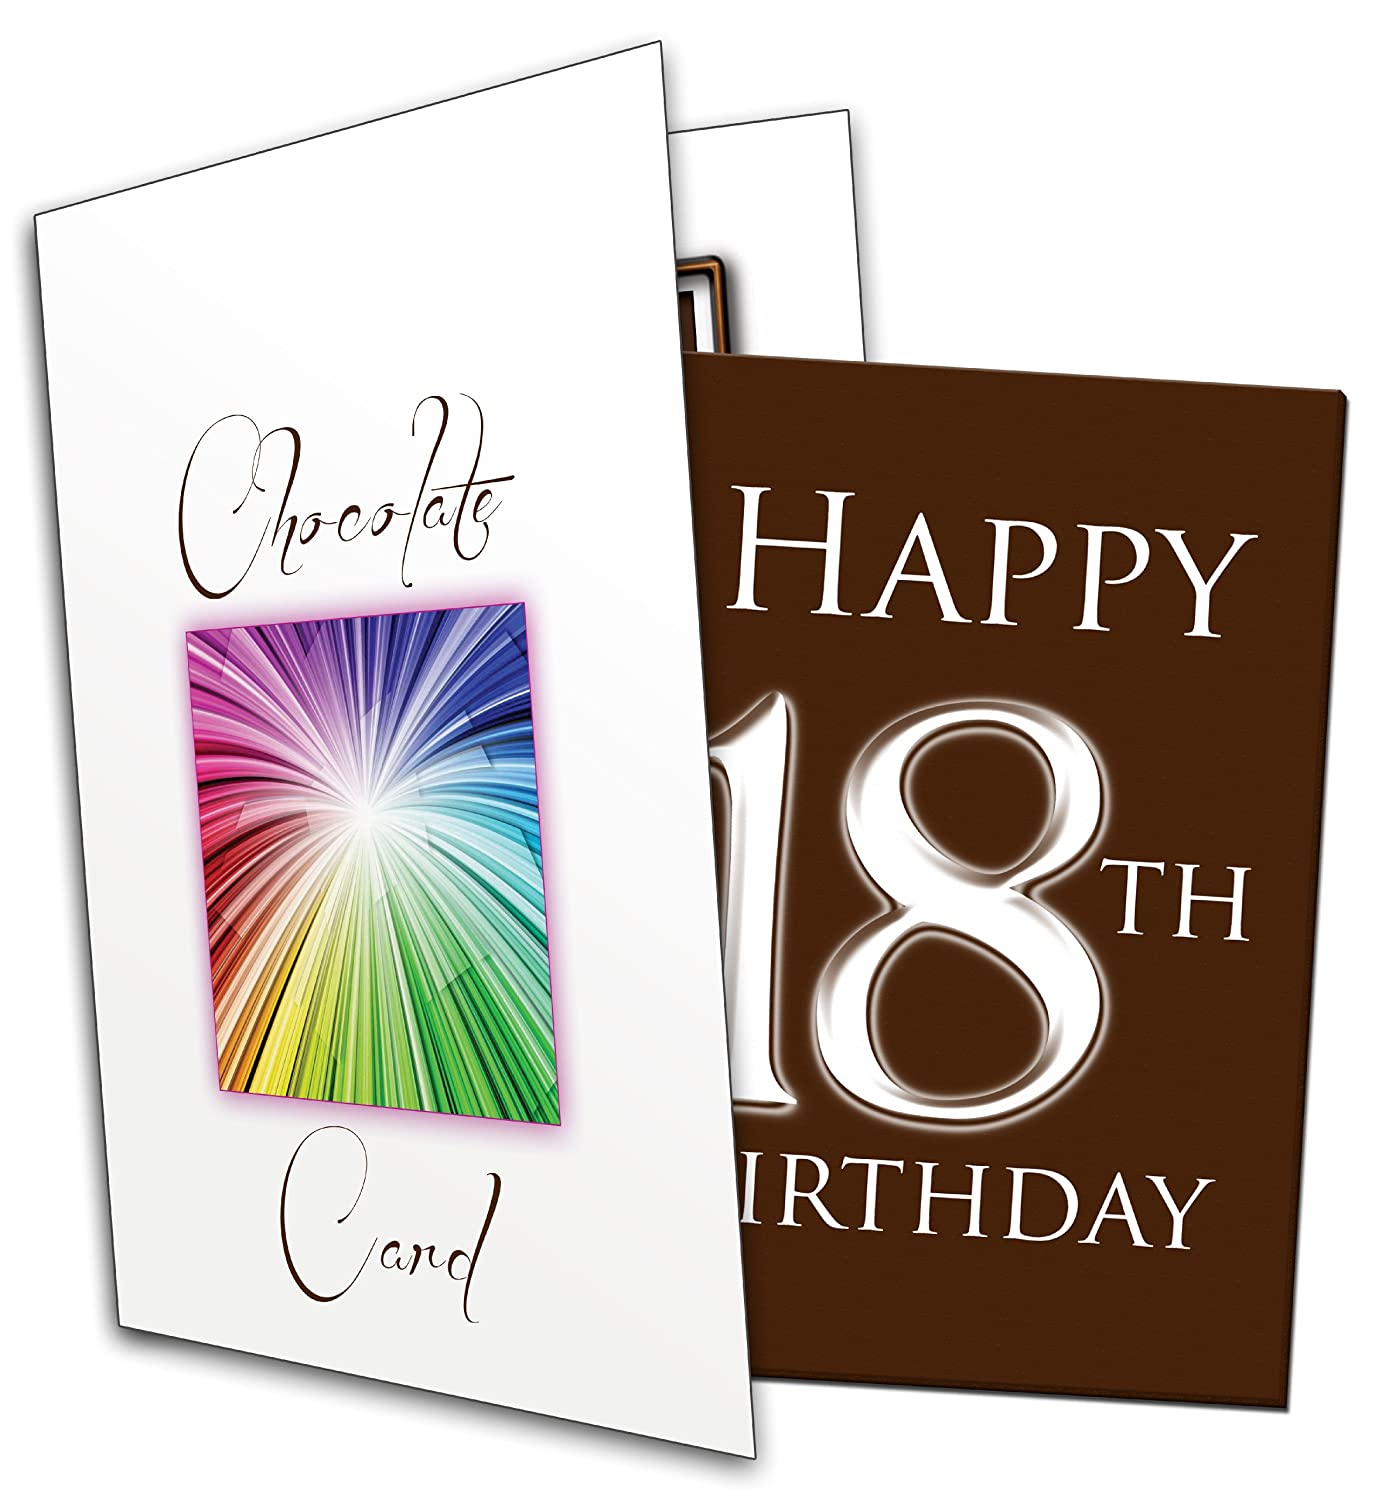 Happy 18th Birthday Chocolate Card 80g Amazon Grocery